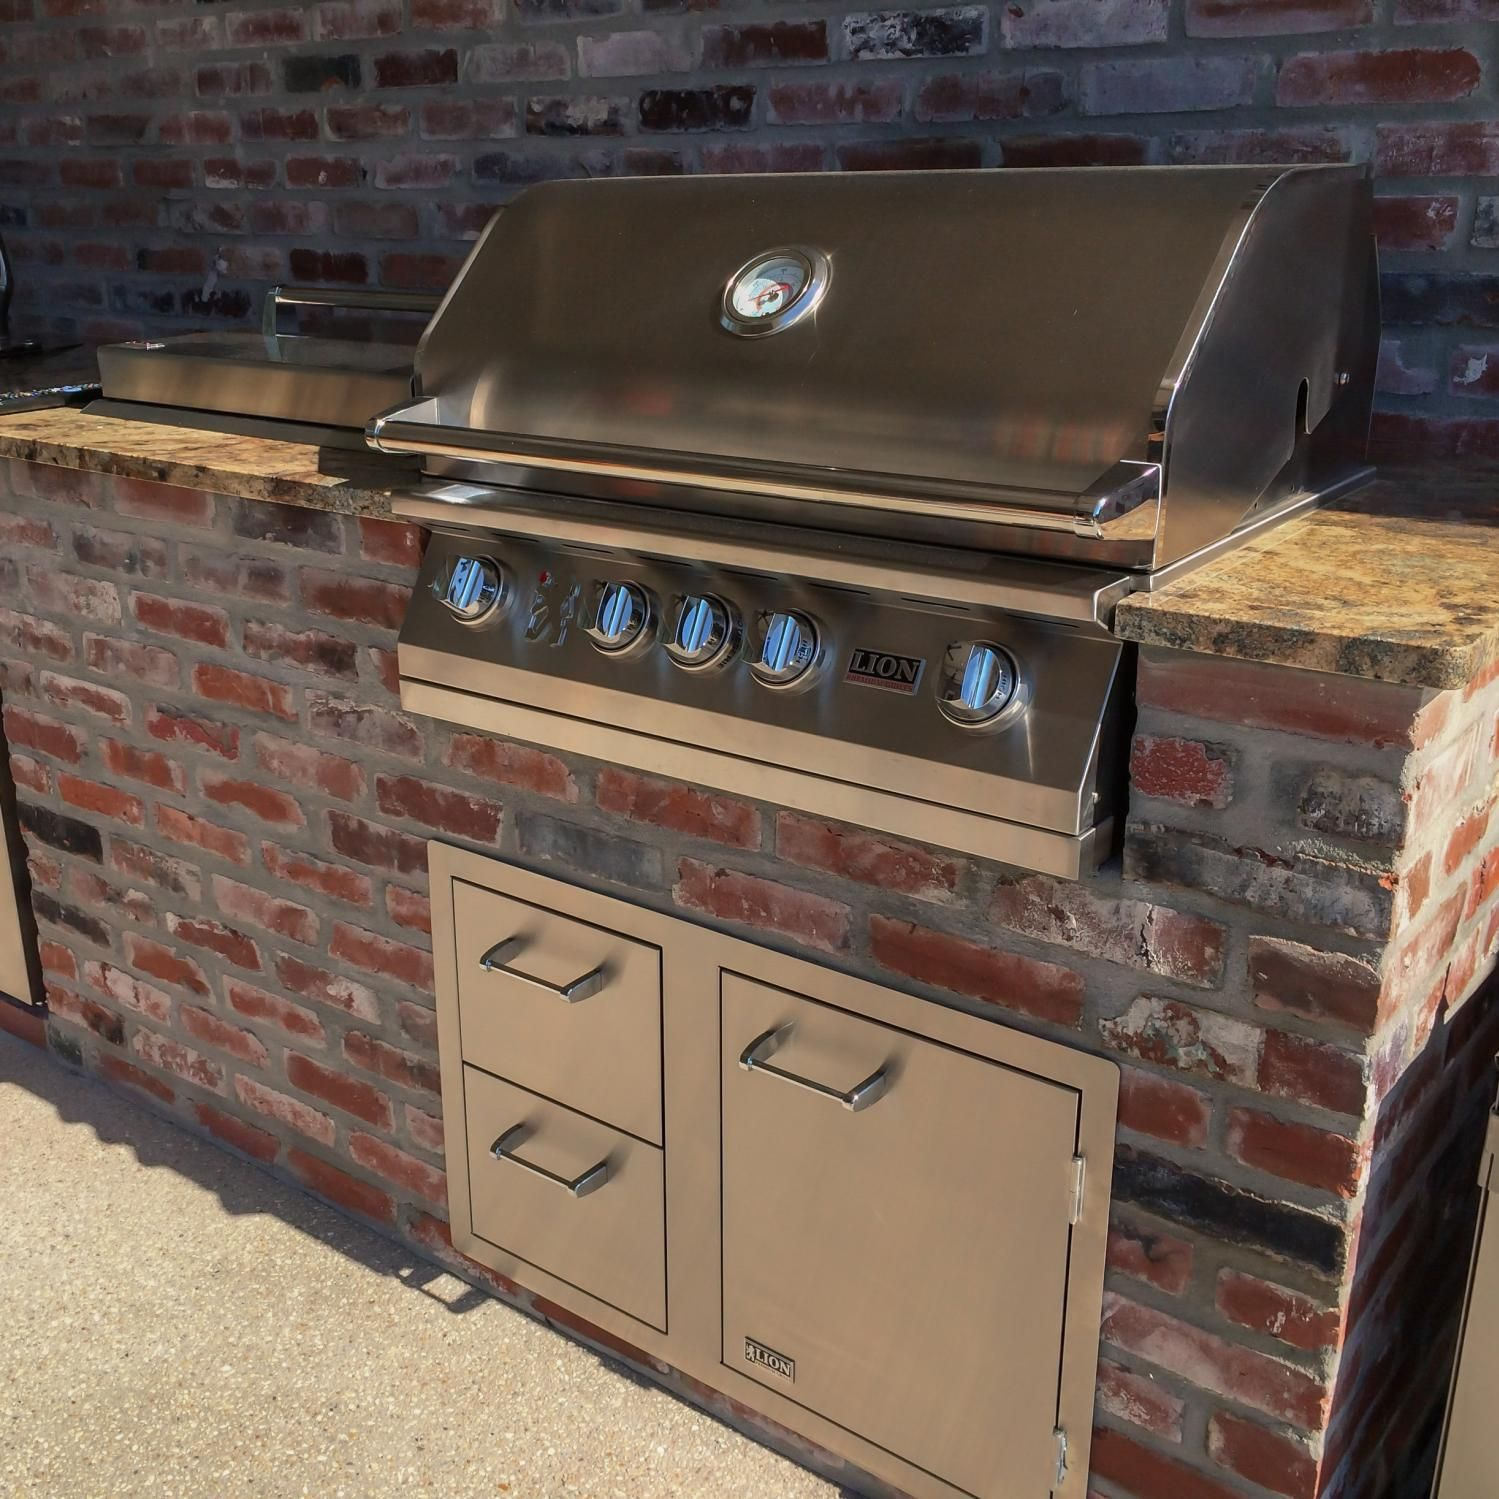 Lion L75000 32 Inch Stainless Steel Built In Natural Gas Grill Bbqguys Built In Outdoor Grill Outdoor Kitchen Design Natural Gas Grill